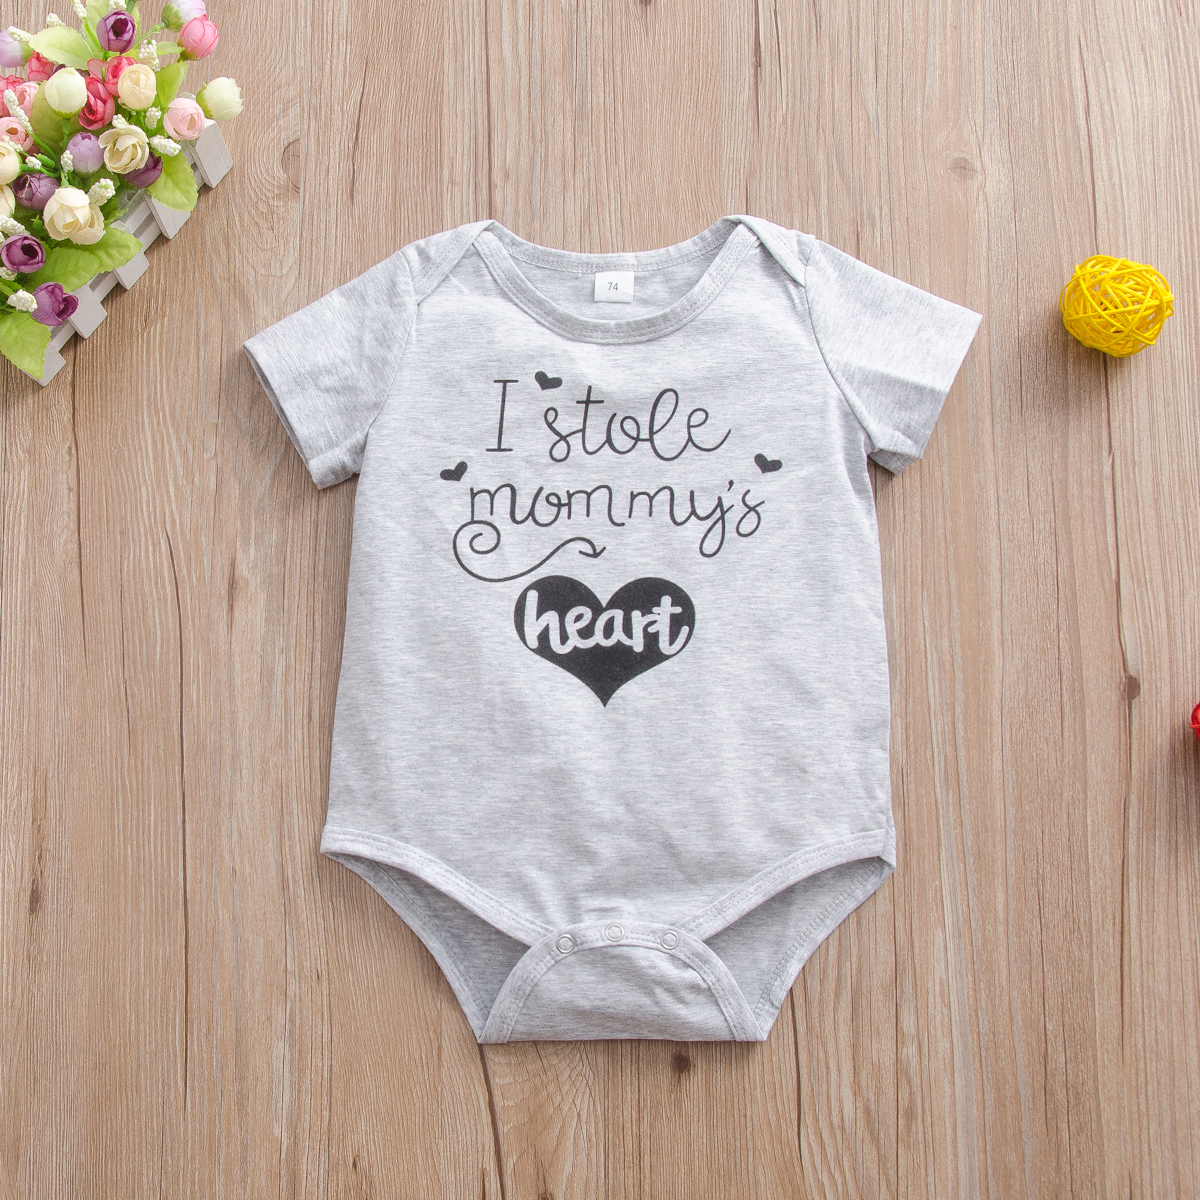 Baby Boy / Girl Letter Print Short-sleeve Romper